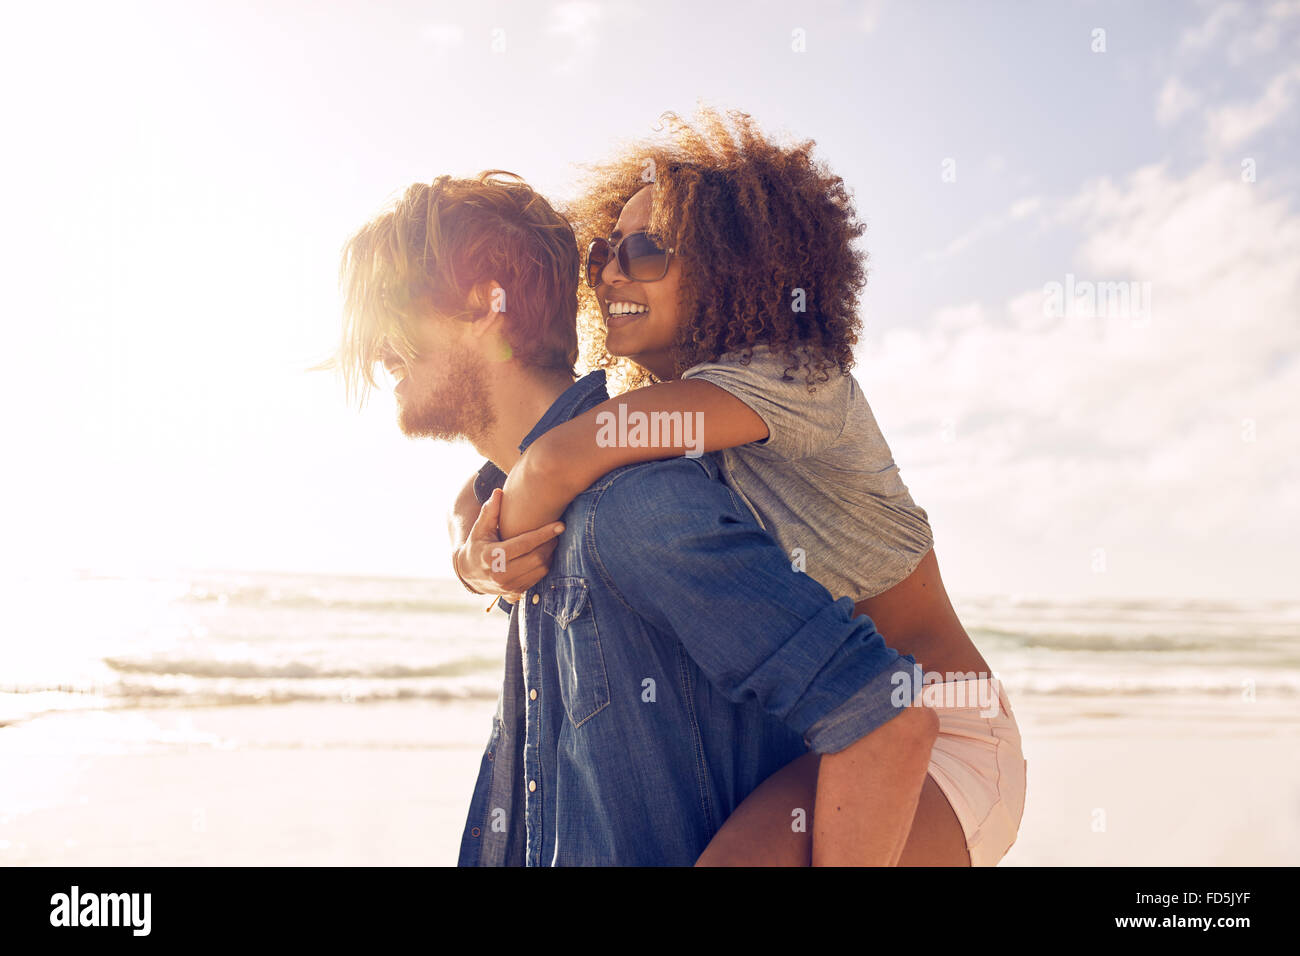 Side view portrait of young man carrying his girlfriend on his back at the beach. Boyfriends giving piggyback ride - Stock Image